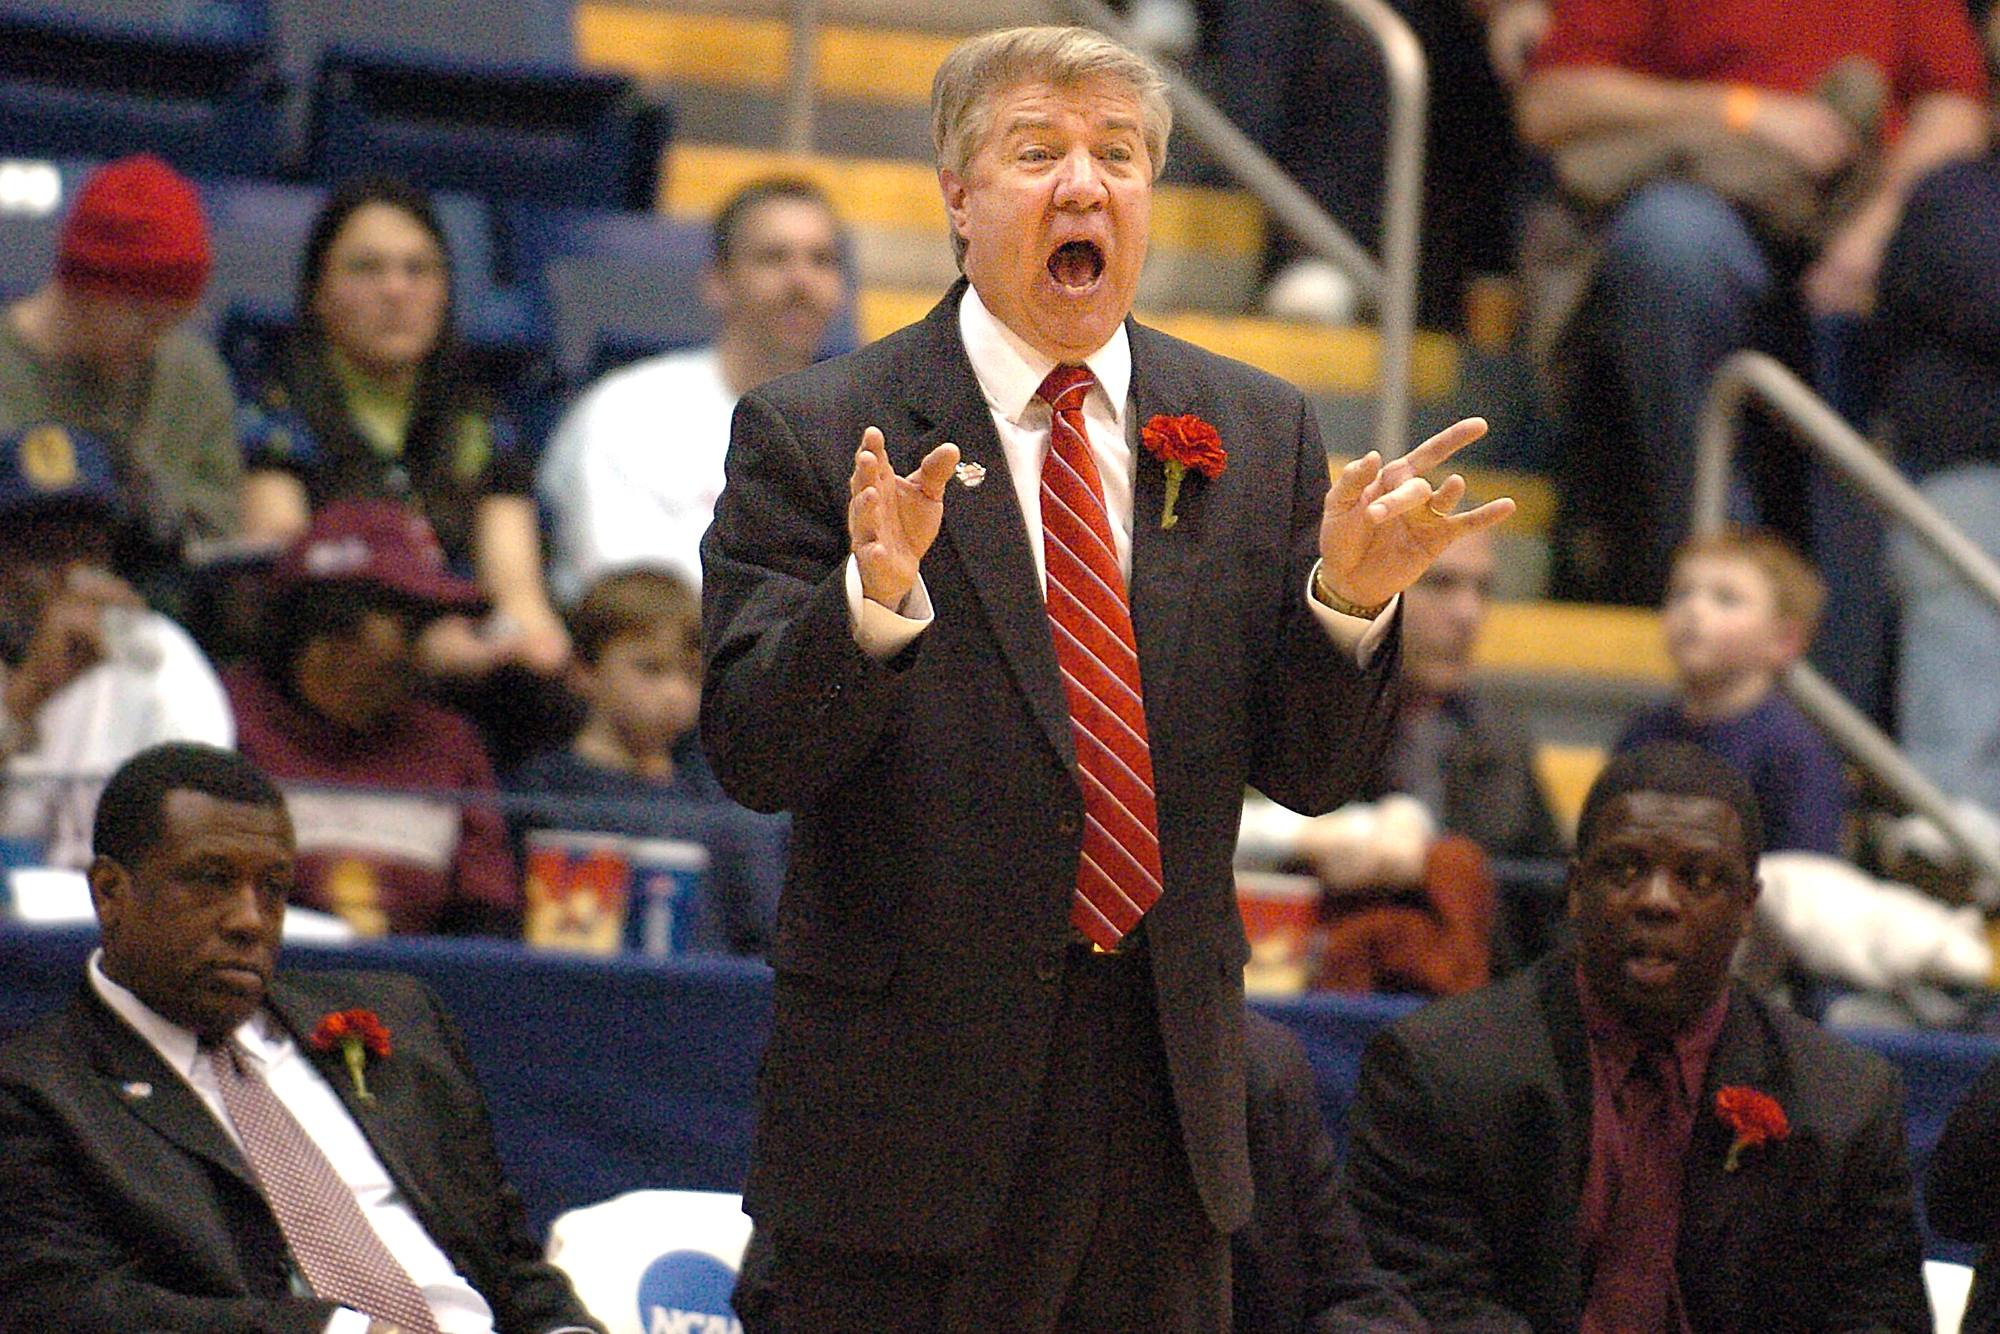 Virginia Union head coach Dave Robbins gestures to his players during the second half of the NCAA Division II Finals basketball game against Winona State in Springfield, Mass., Saturday, March 25, 2006. Winona won 66-56.